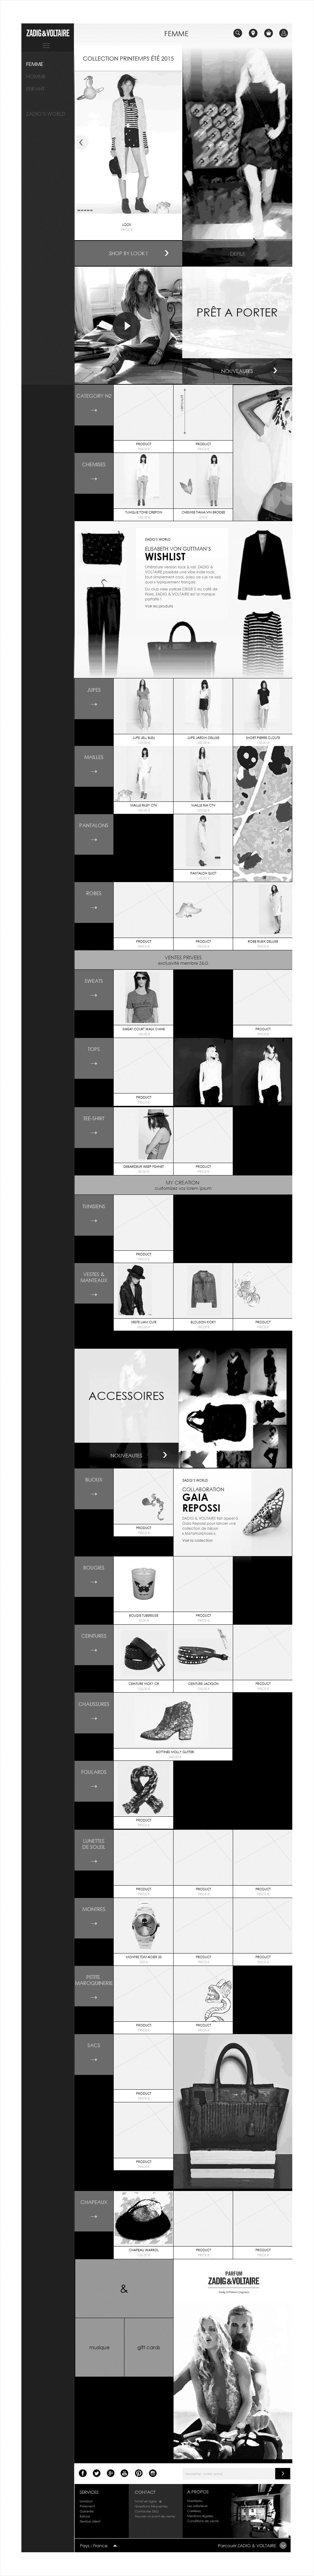 univers boutique, wireframe ecommerce zadig & voltaire